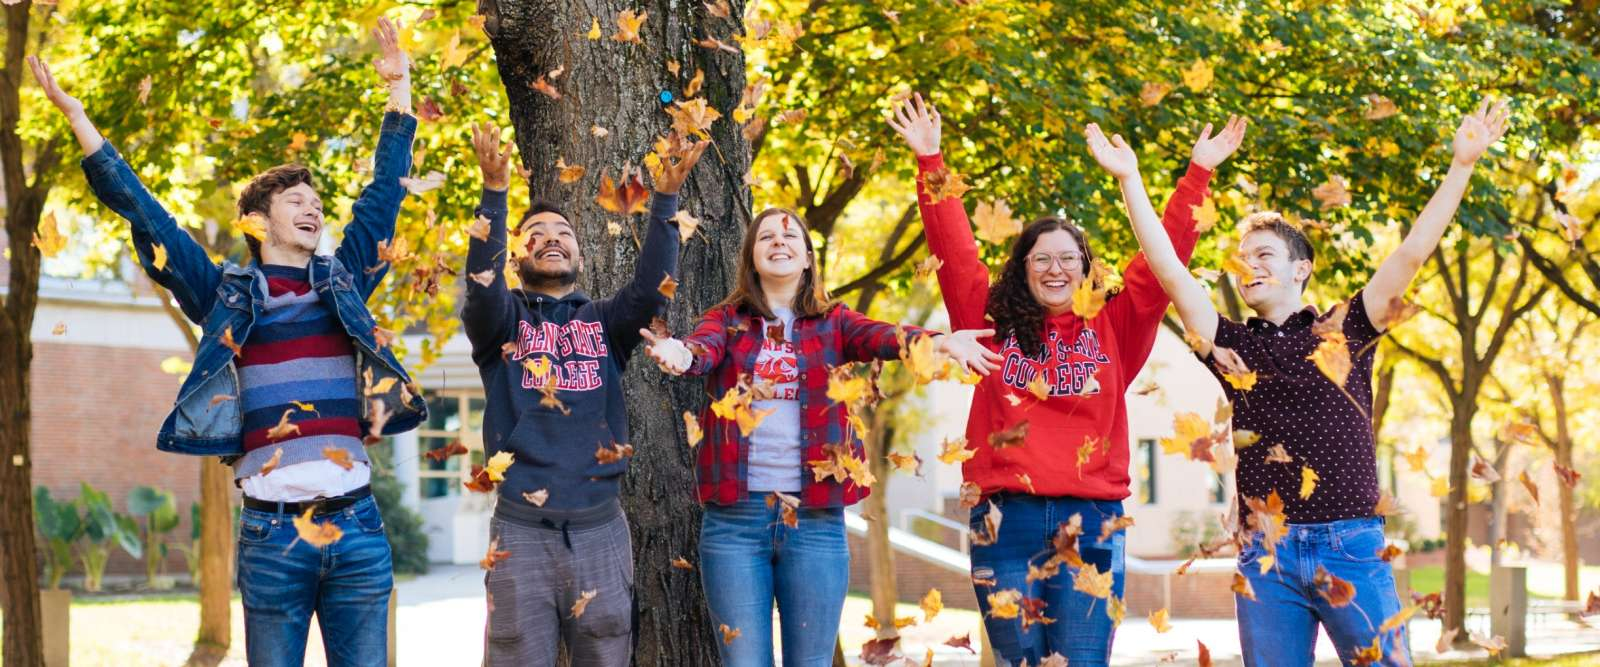 Students in the fall on the Quad